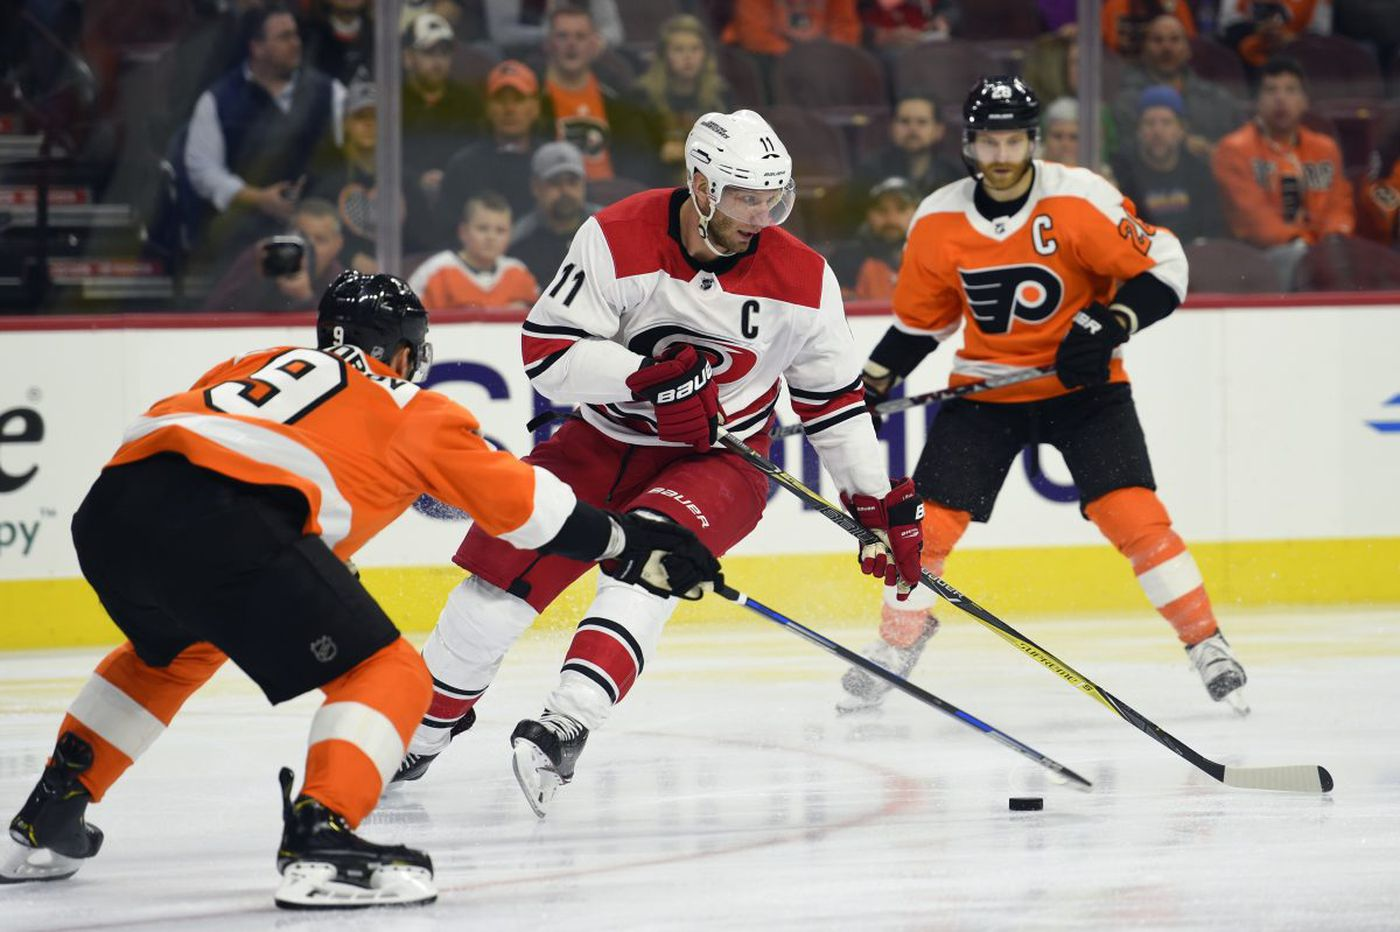 Flyers enter March like lambs, lose to the Hurricanes, 4-1